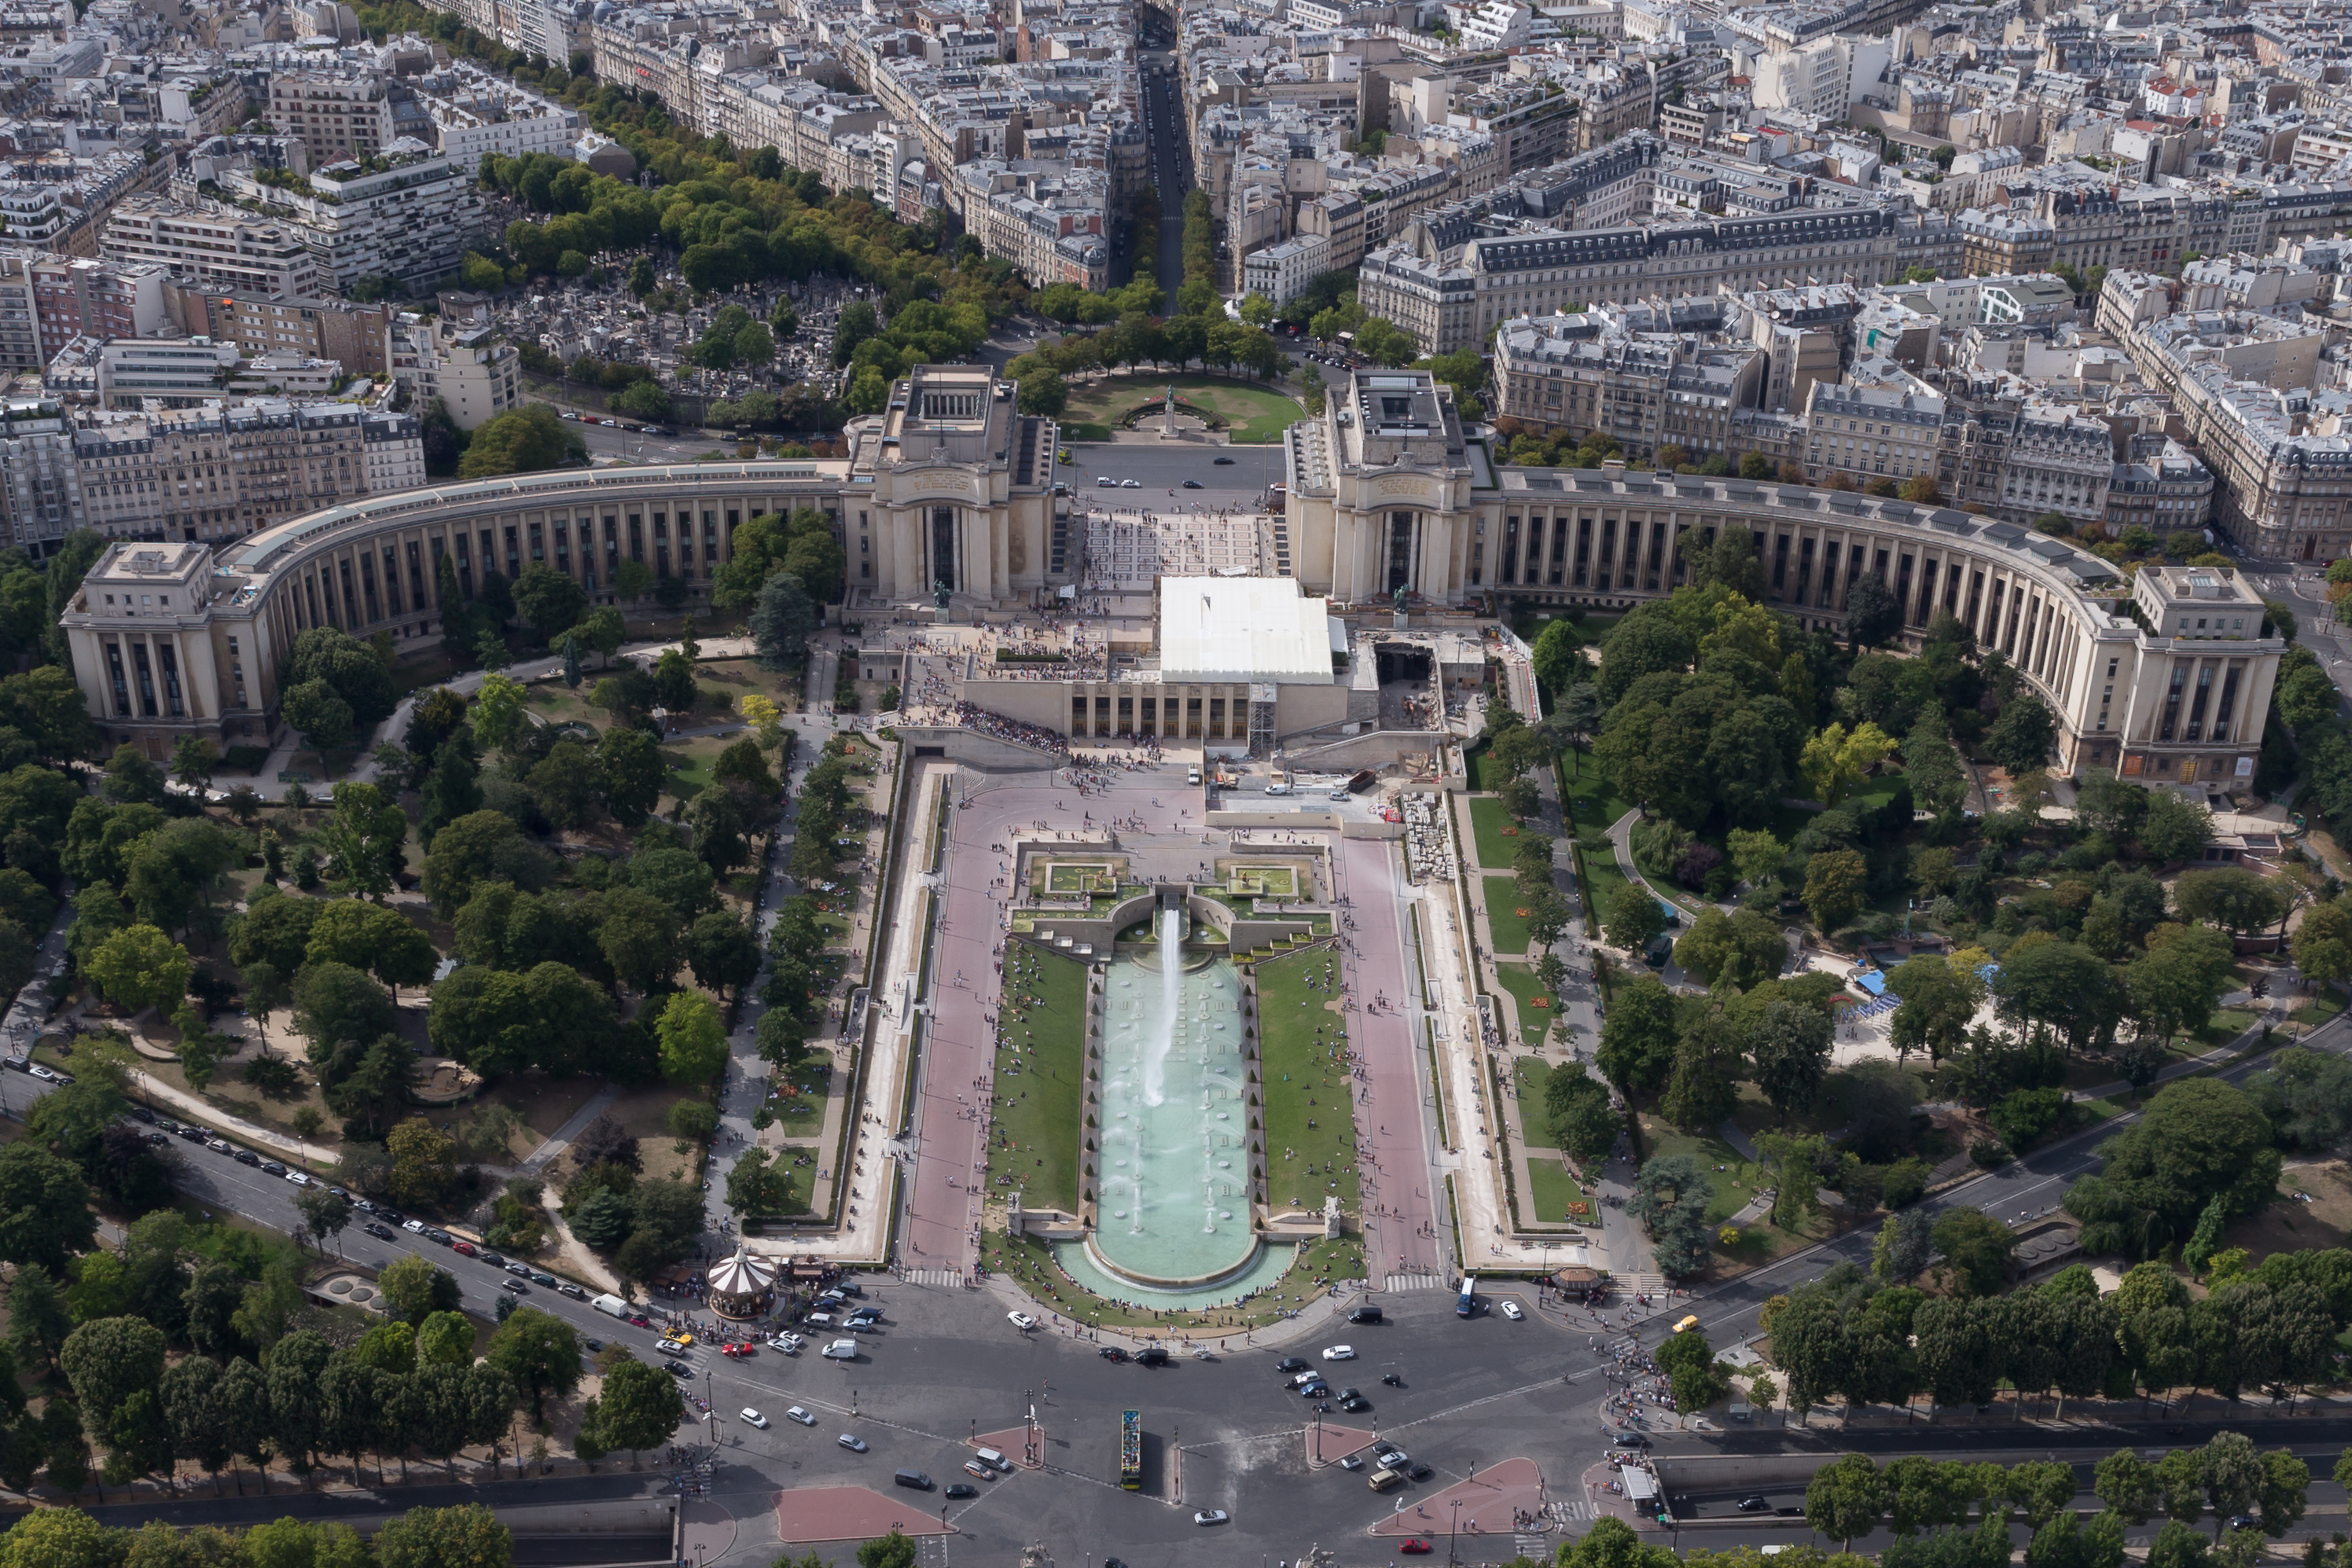 The Eiffel Tower facing southeast from the Palais de Chaillot and the Jardins du Trocadéro [former seat of Jean Vilar's Théâtre National Populaire]. Photographer: William Crochot / Wikimedia Commons, CC BY-SA 4.0.